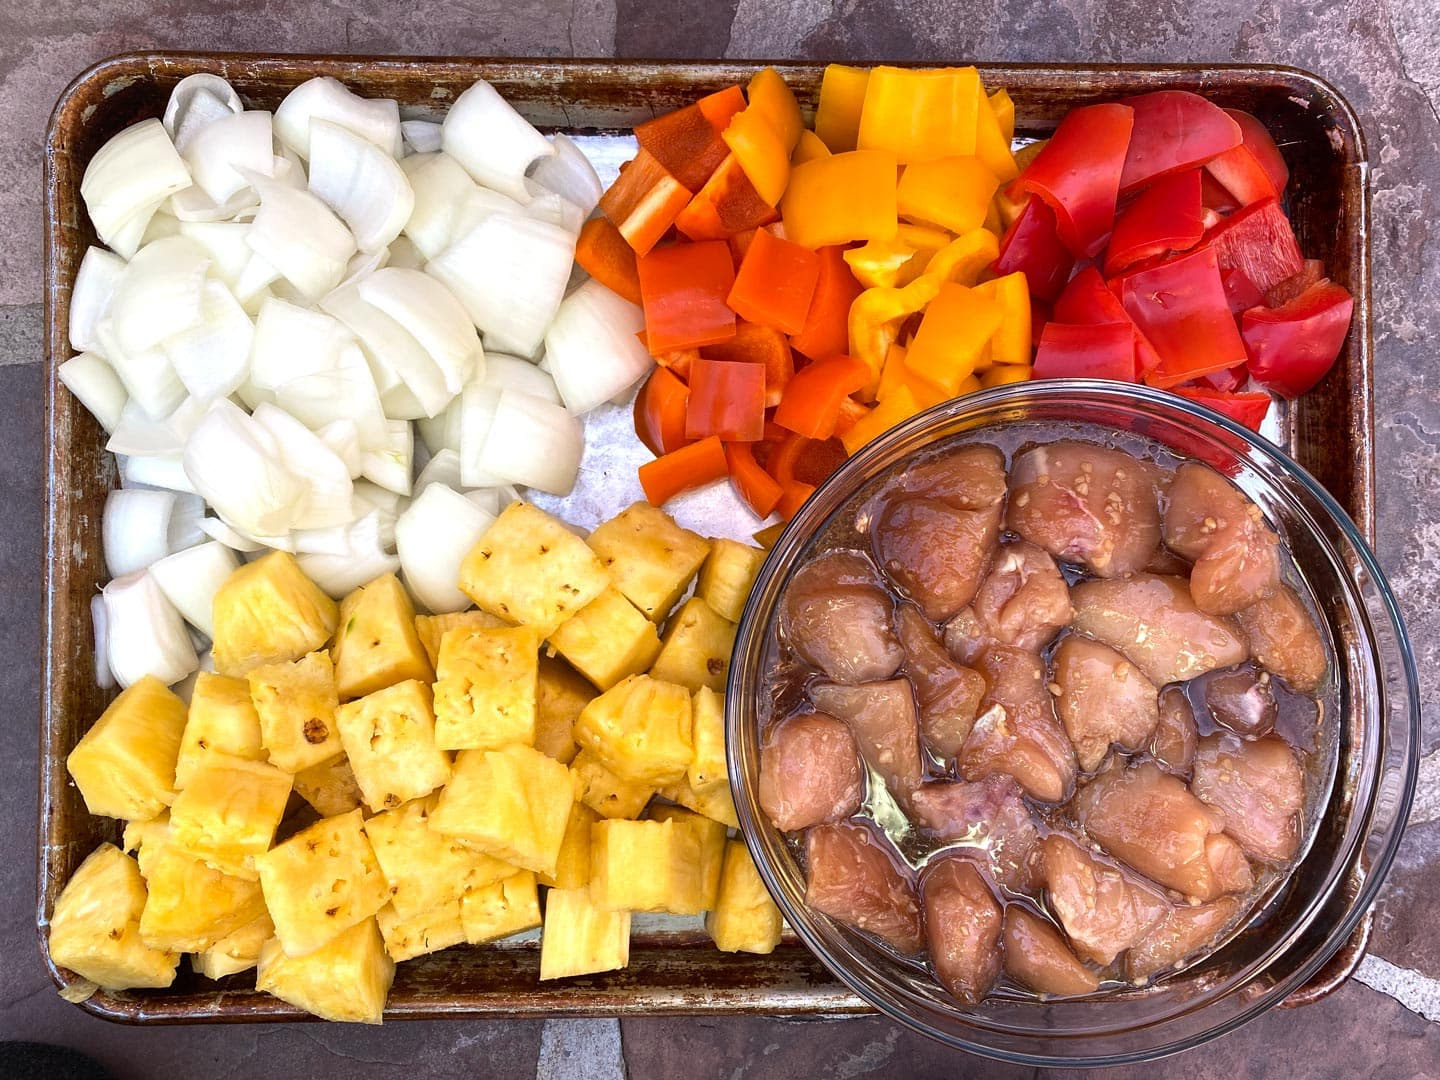 Ingredients for grilled Honey Chicken Kabobs on sheet pan.